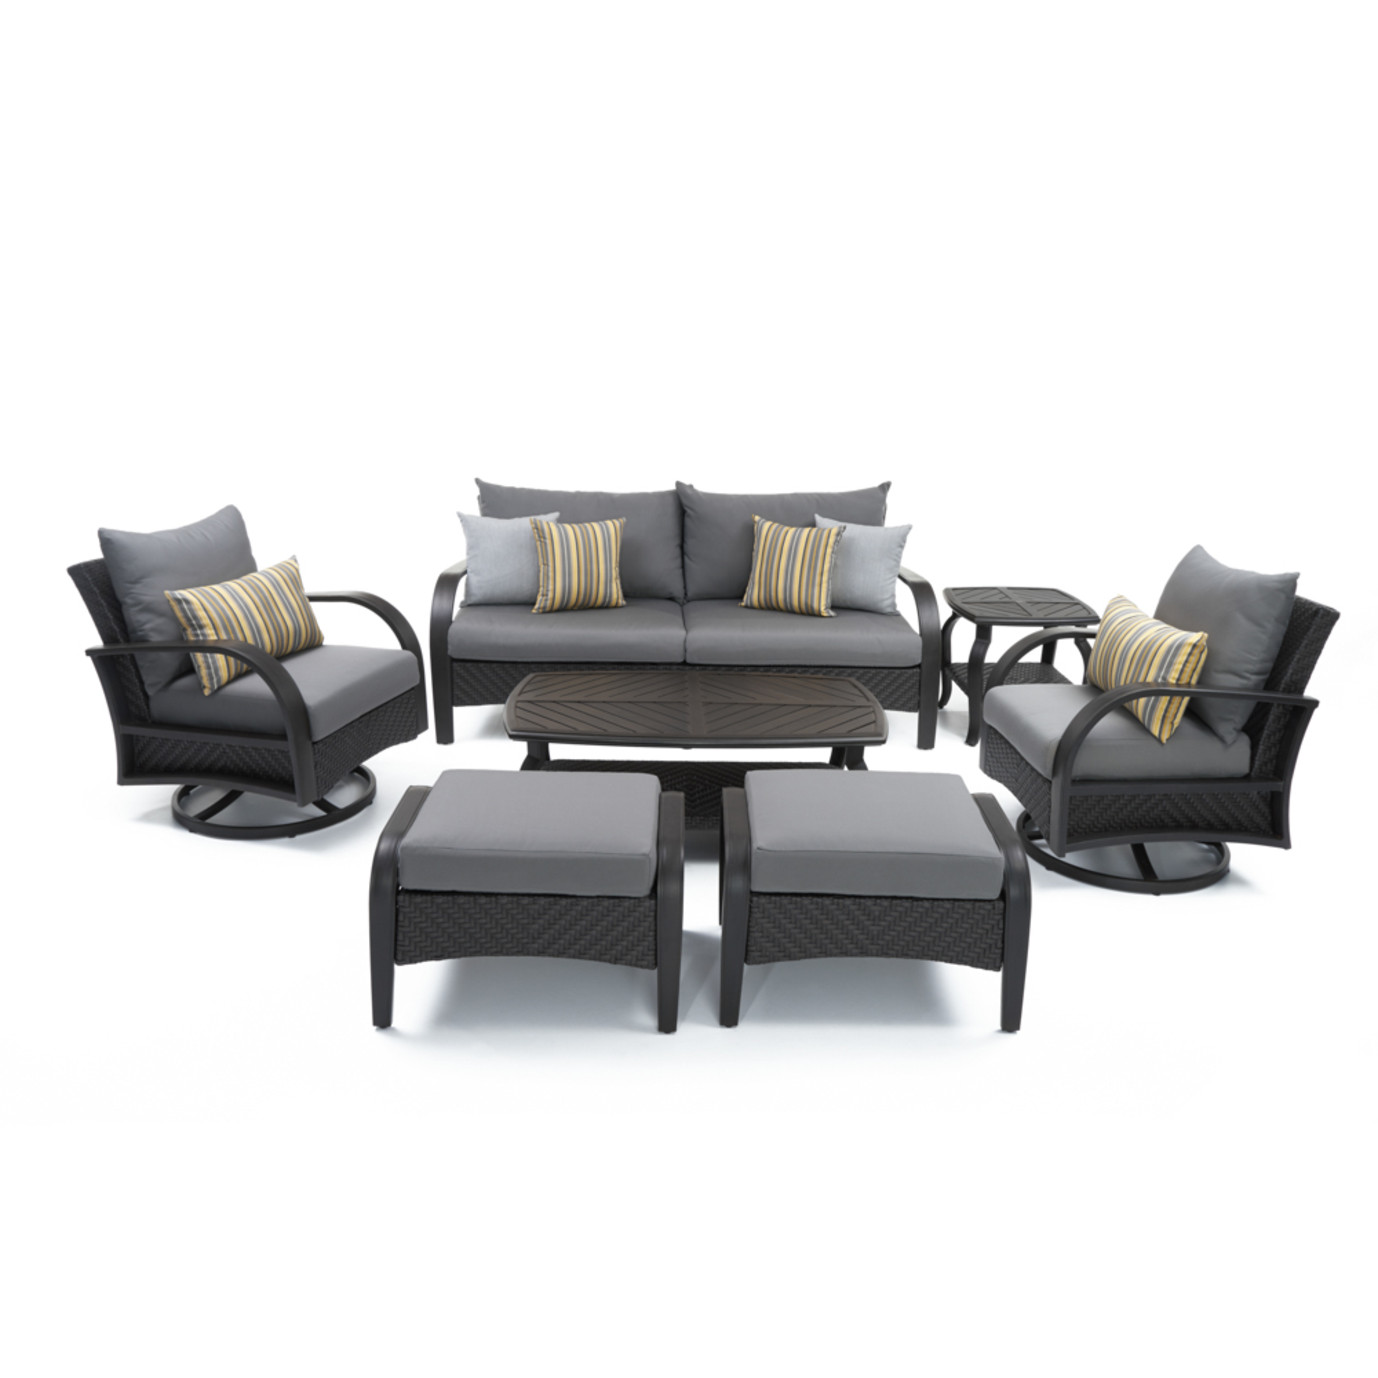 Barcelo™ 7pc Motion Club Deep Seating Set - Charcoal Gray